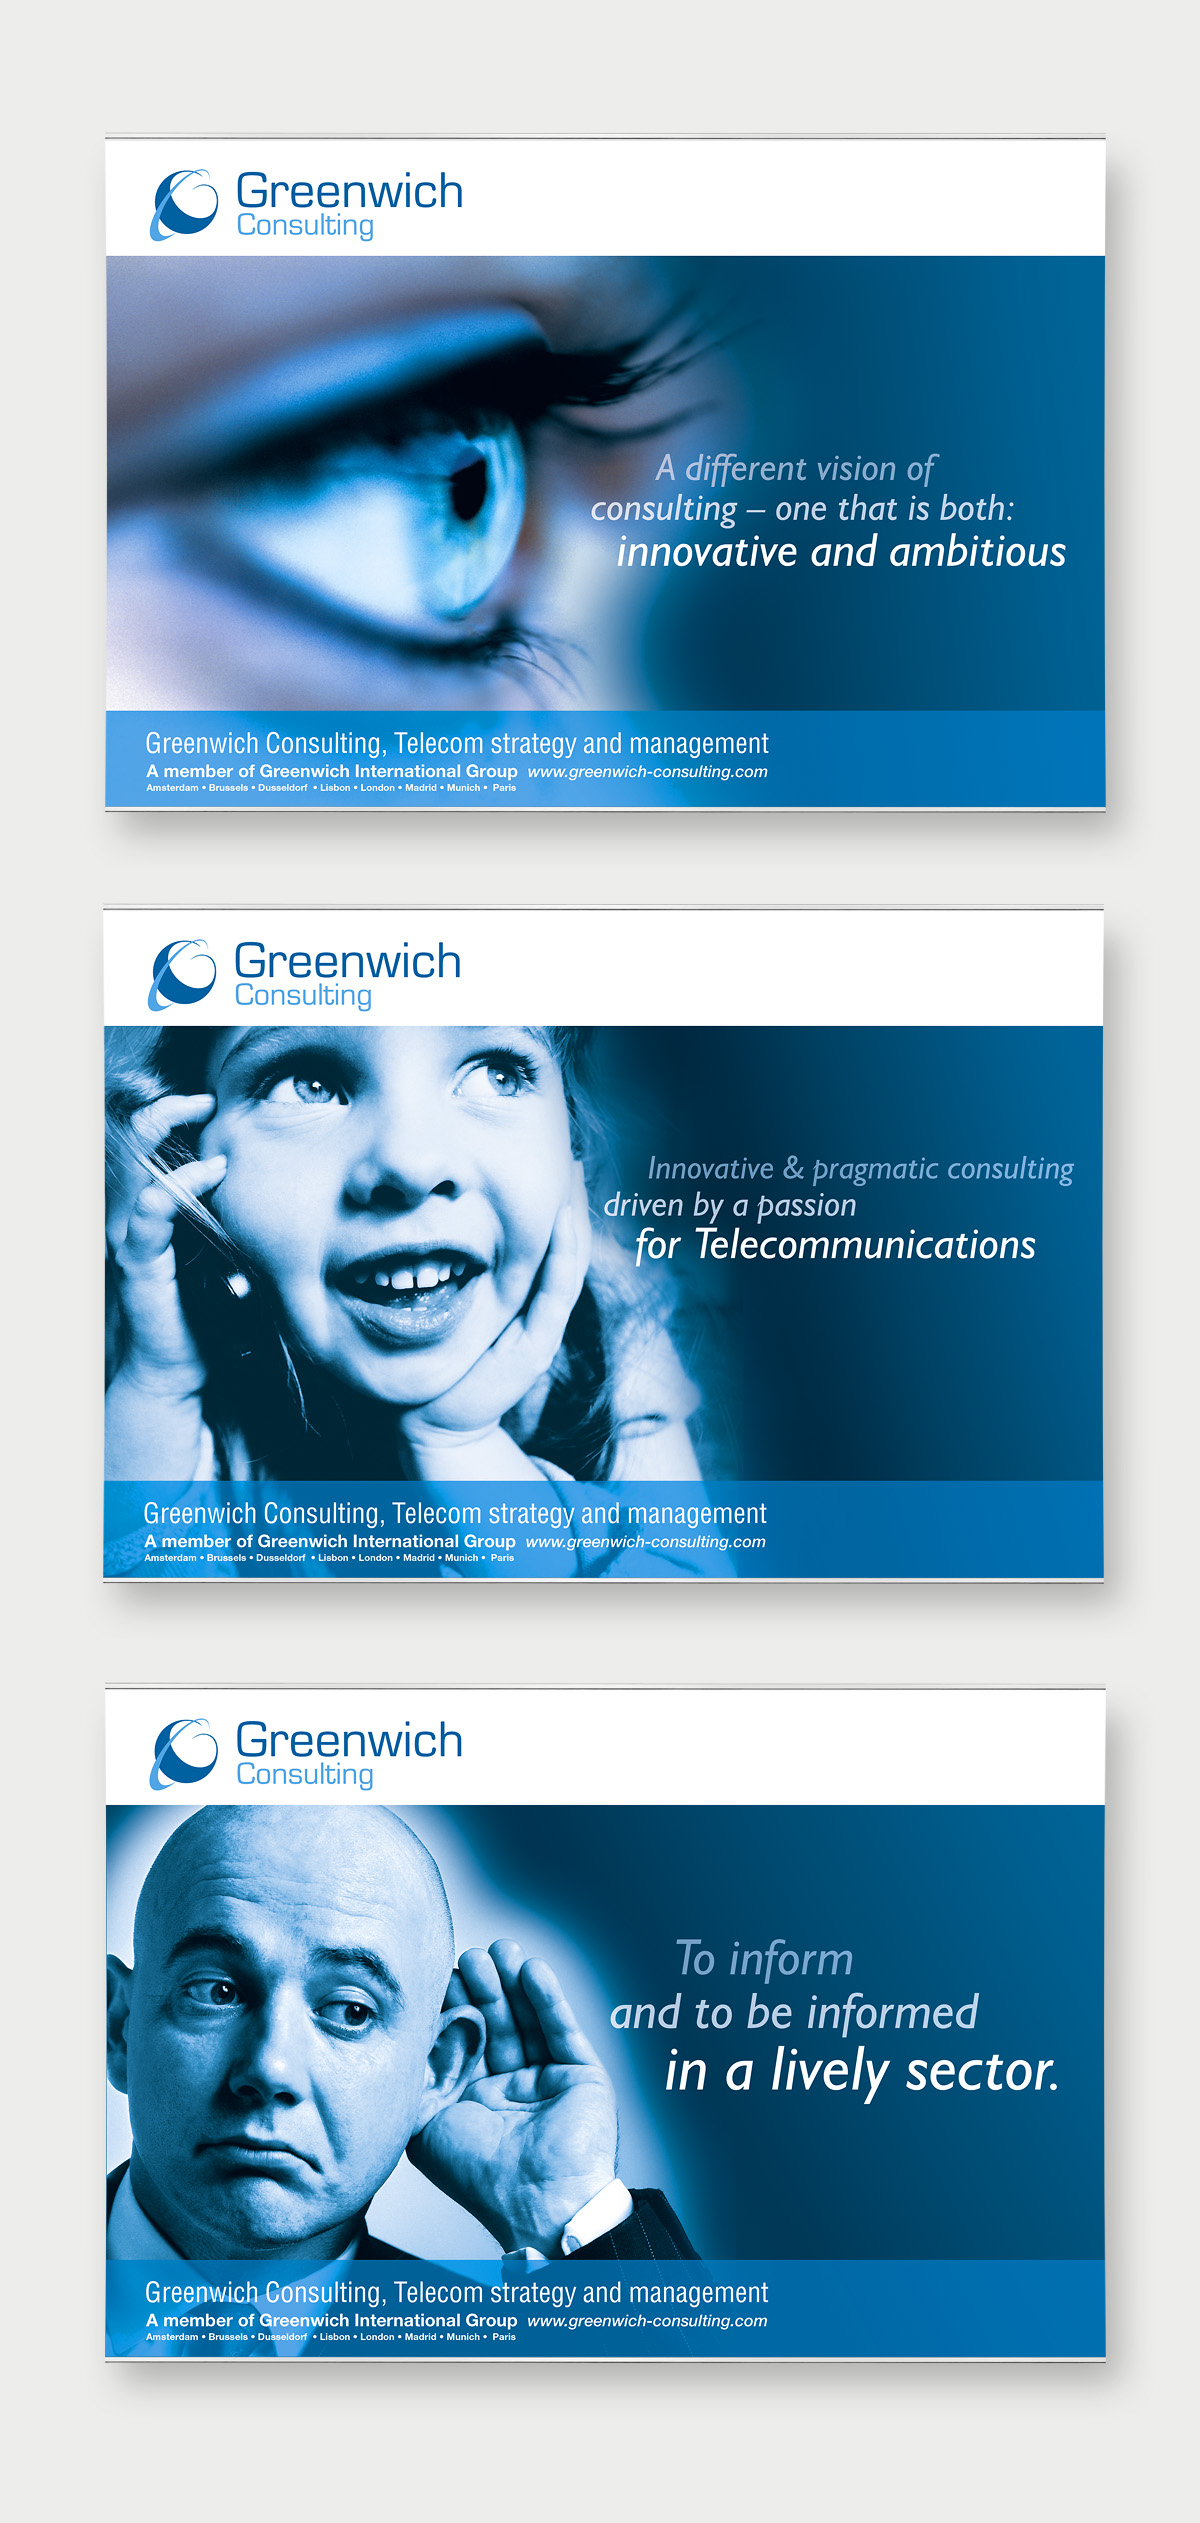 Greenwich-Consulting-Banner